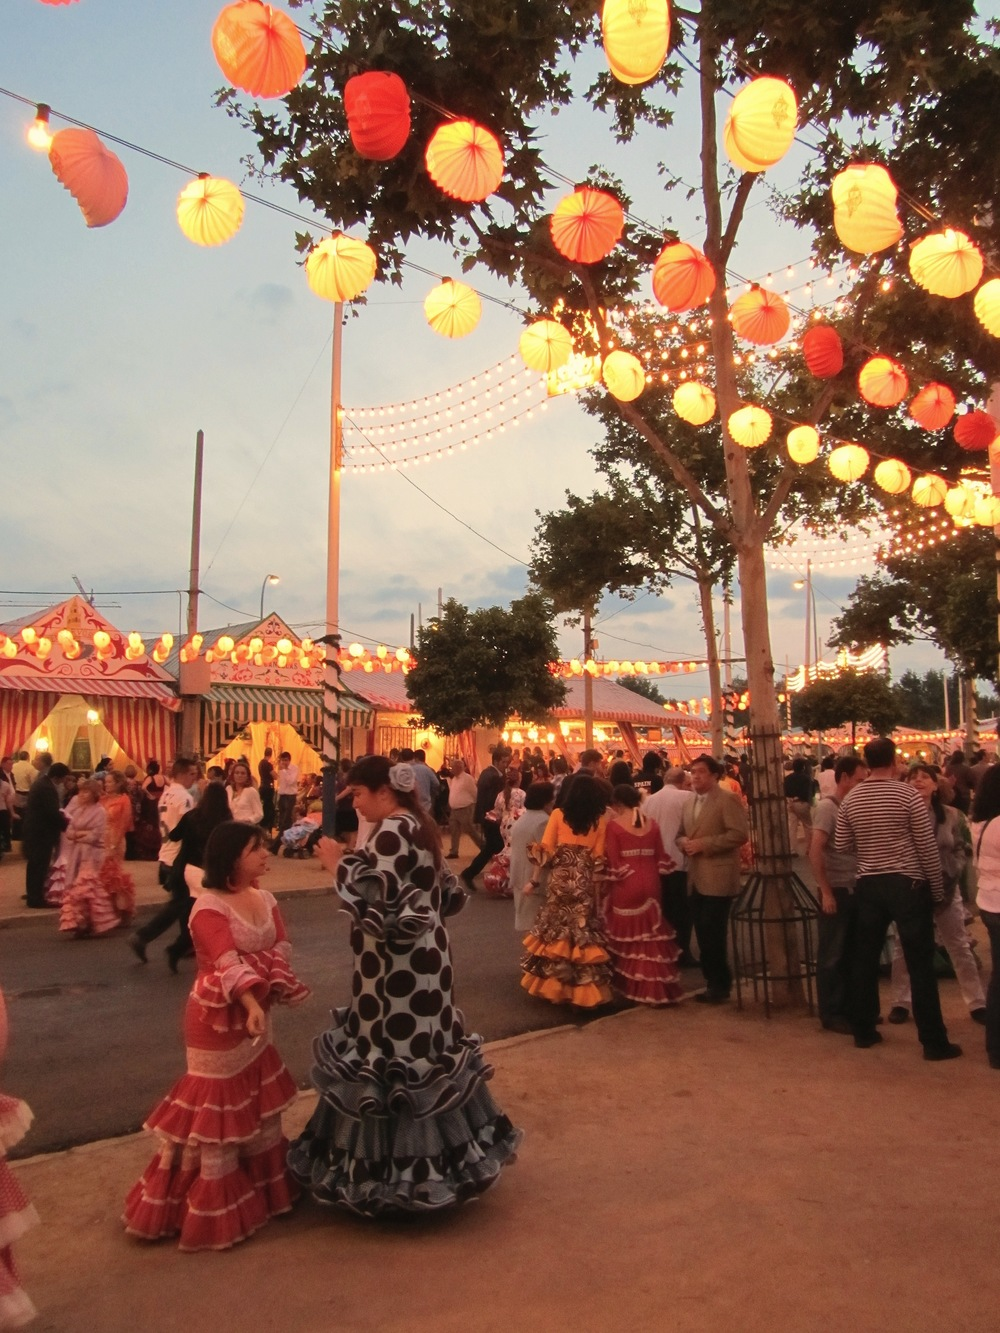 The fairgrounds in Sevilla, Spain during Feria are filled with women in flamenco dresses